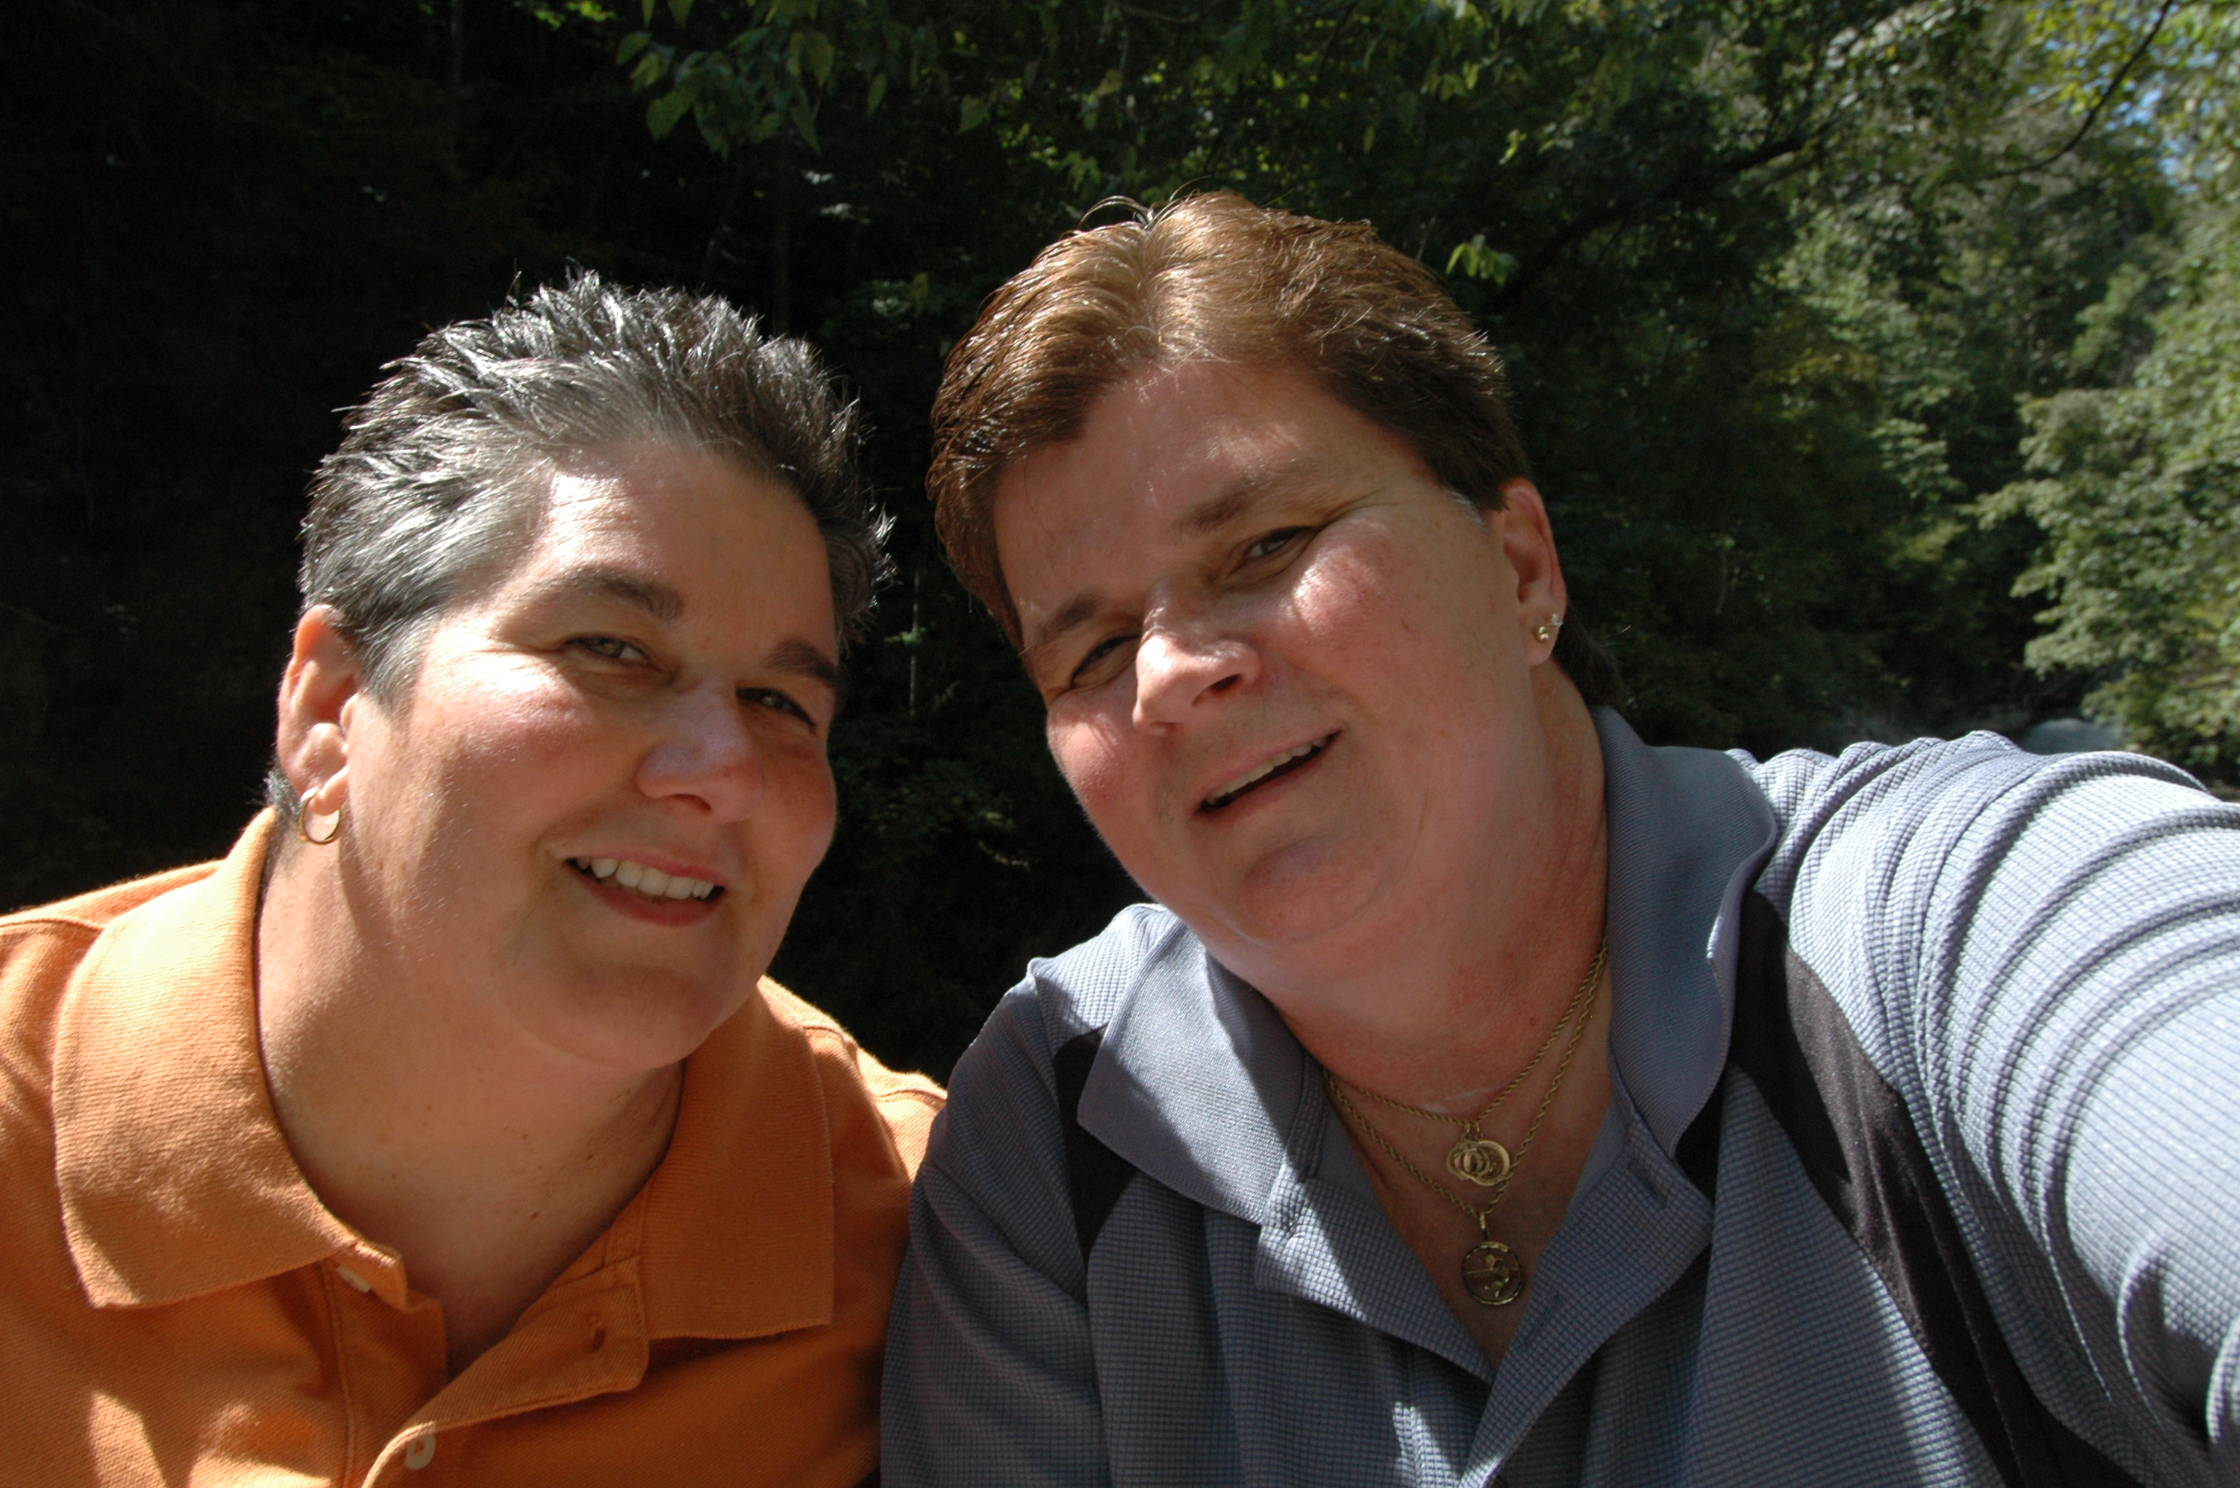 Sharon and Denise